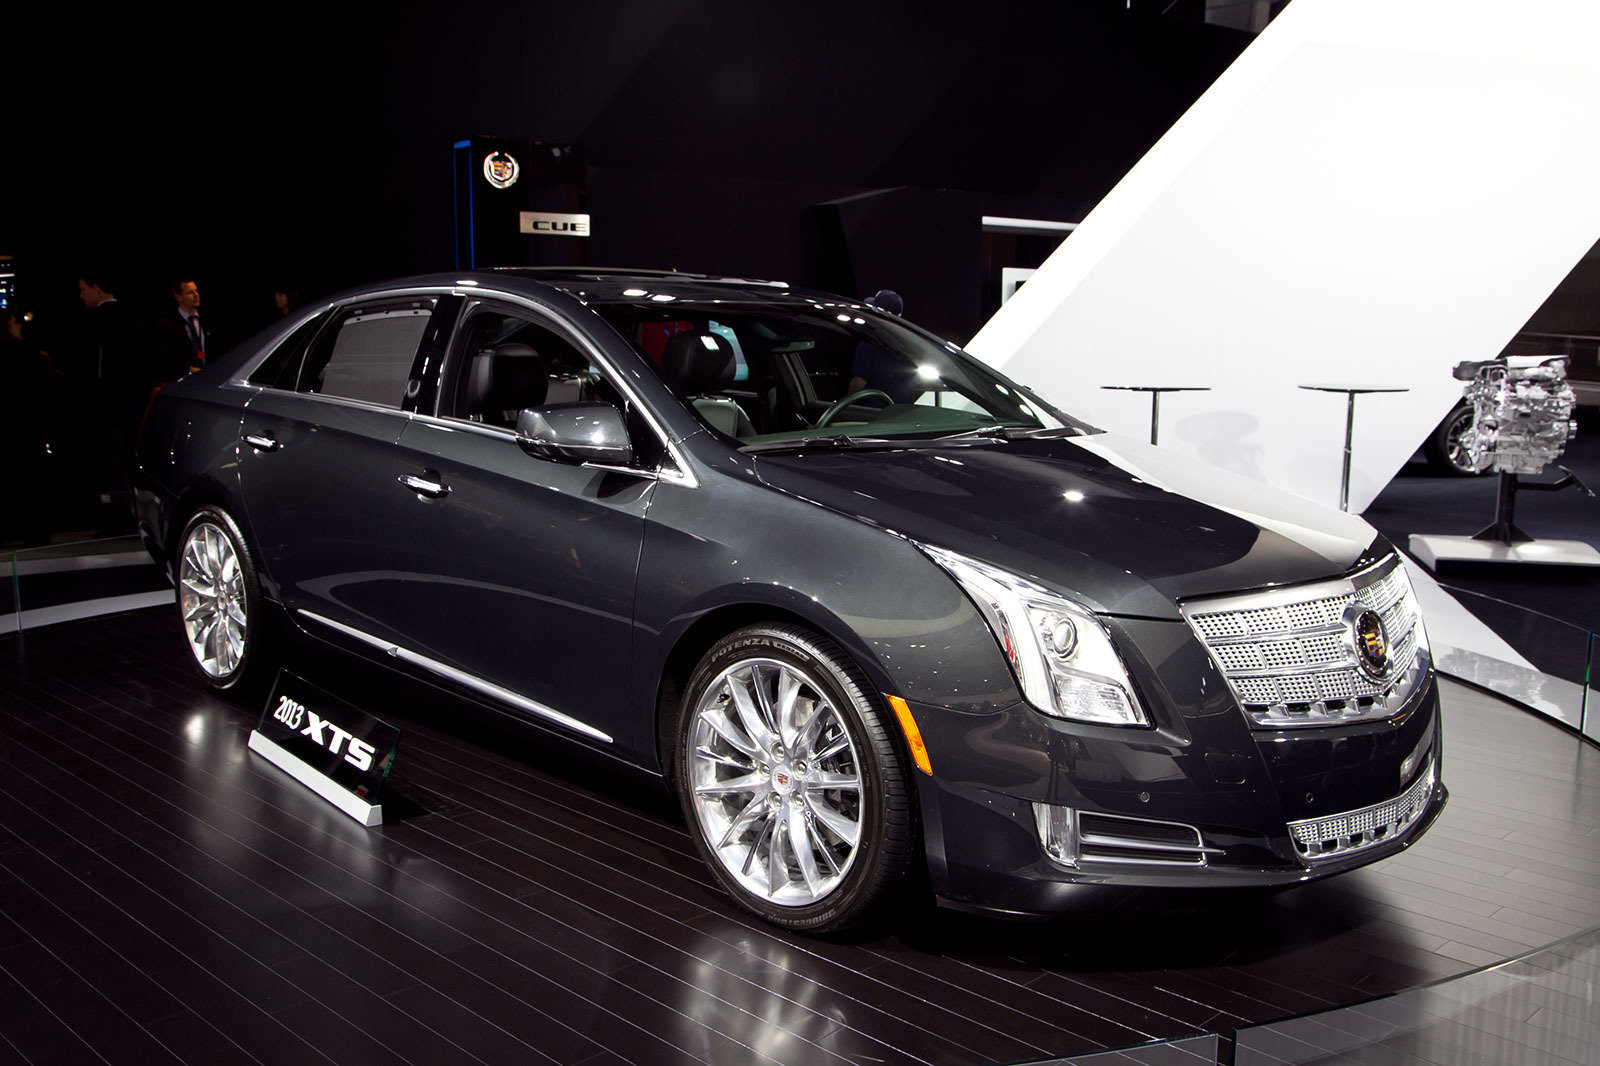 2013 cadillac xts picture 448651 car review top speed. Black Bedroom Furniture Sets. Home Design Ideas